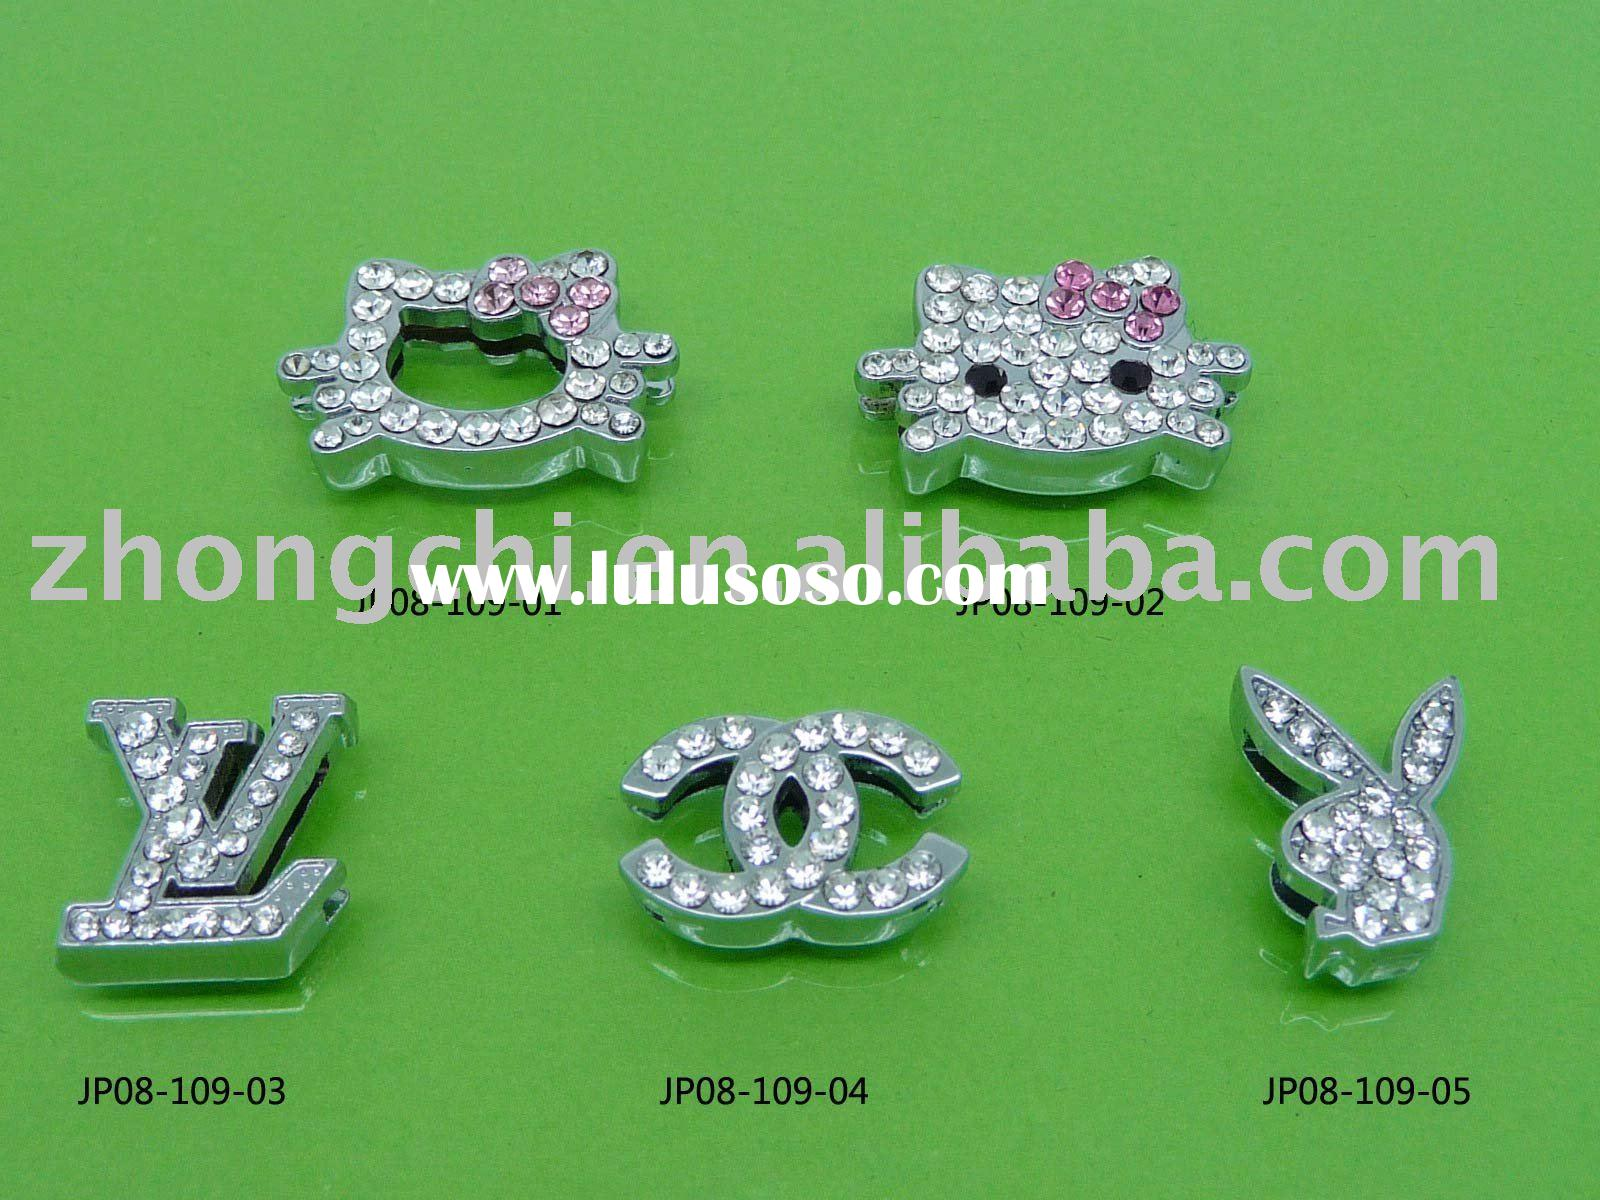 rhinestone or expoxy slide charms for bracelets,phone straps,dog collars